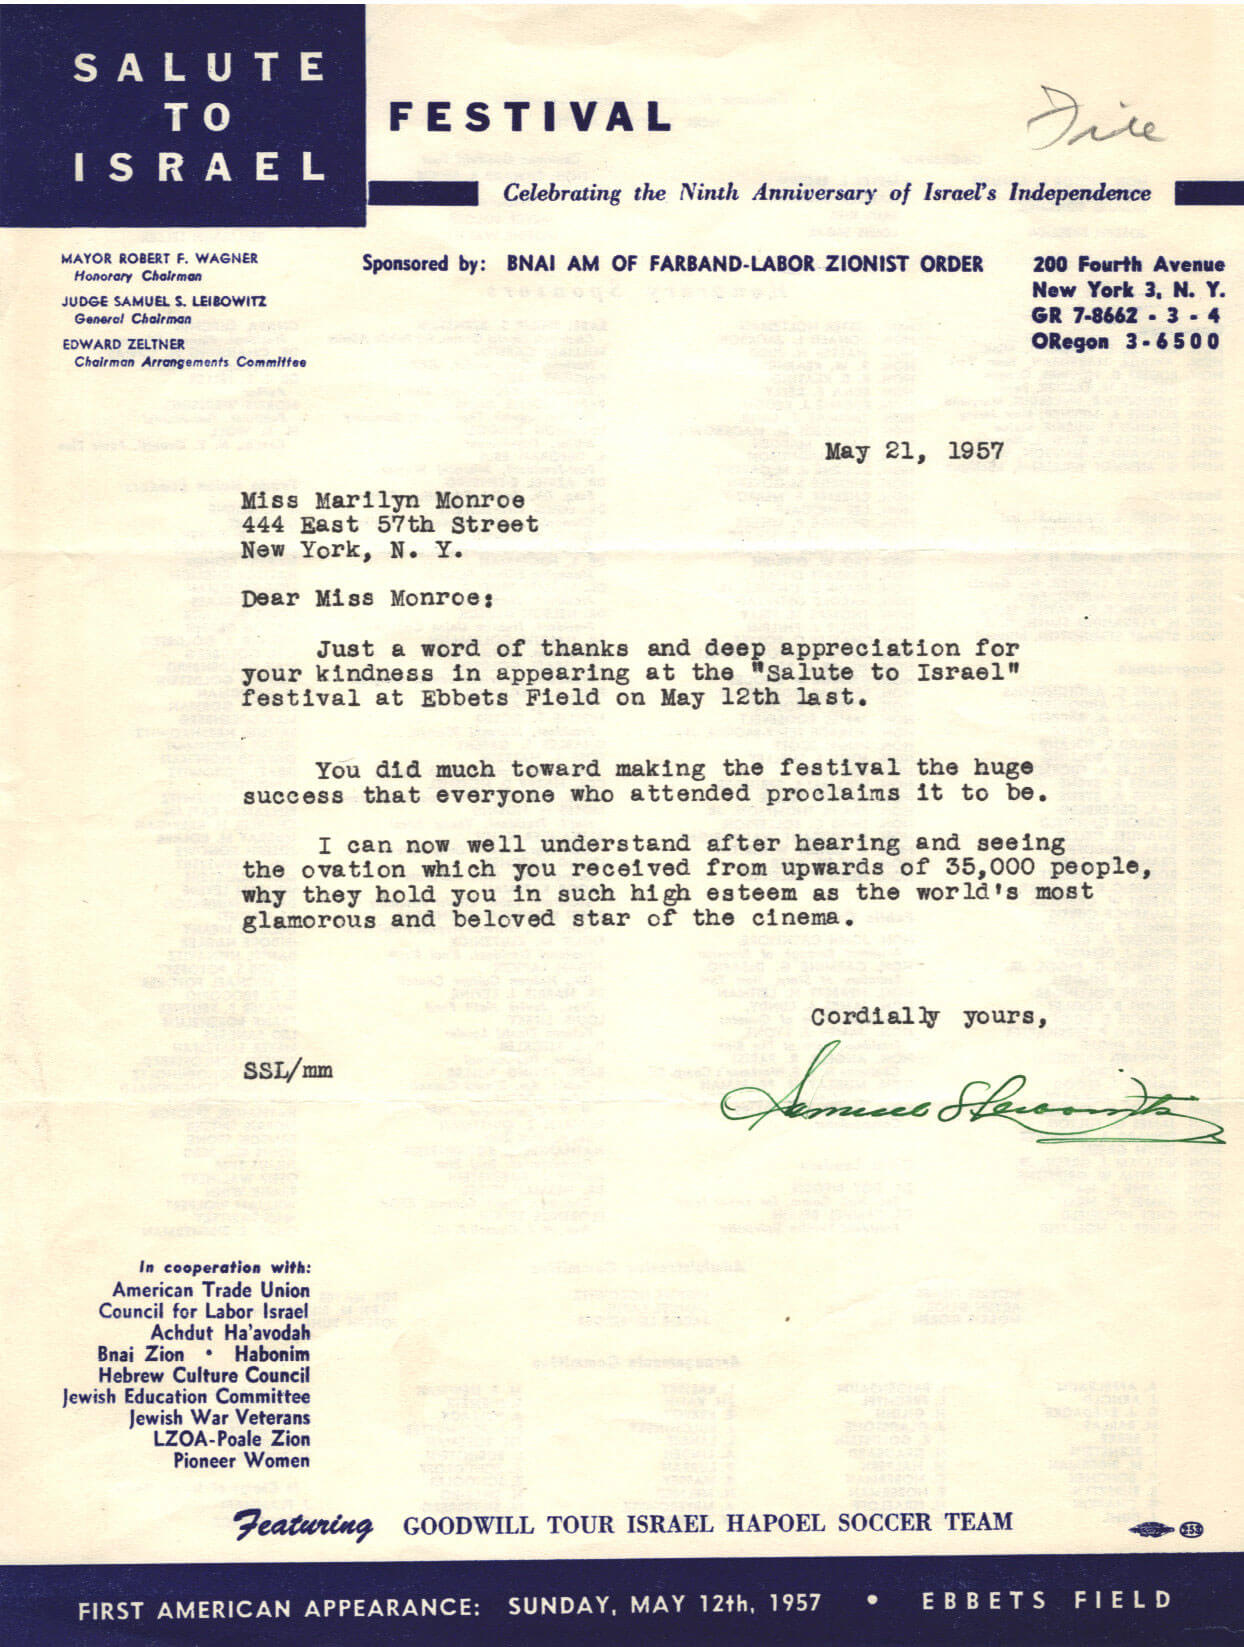 210. A Letter From the Salute to Israel Festival to Marilyn Monroe